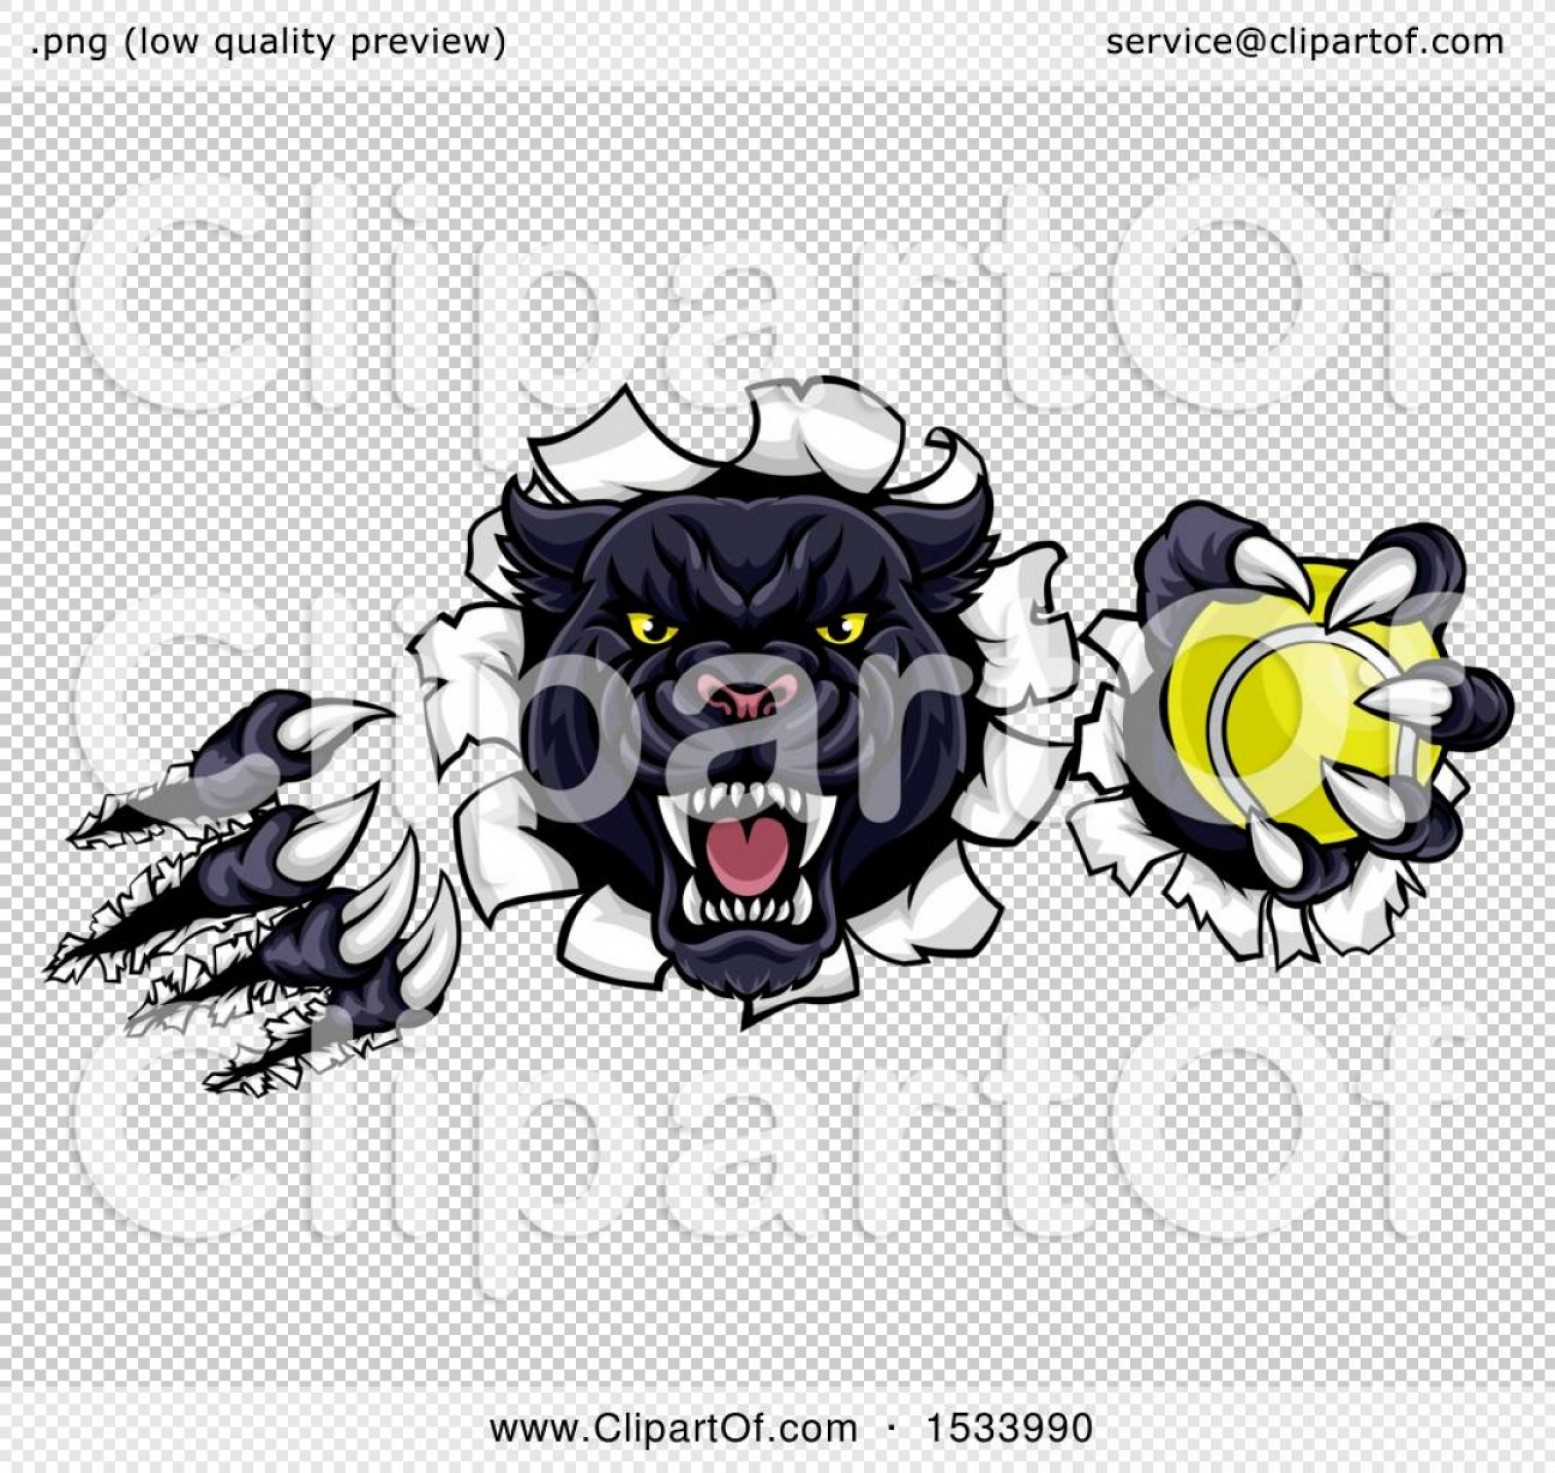 Panther Mascot Vector Sports: Black Panther Mascot Shredding Through A Wall With A Tennis Ball